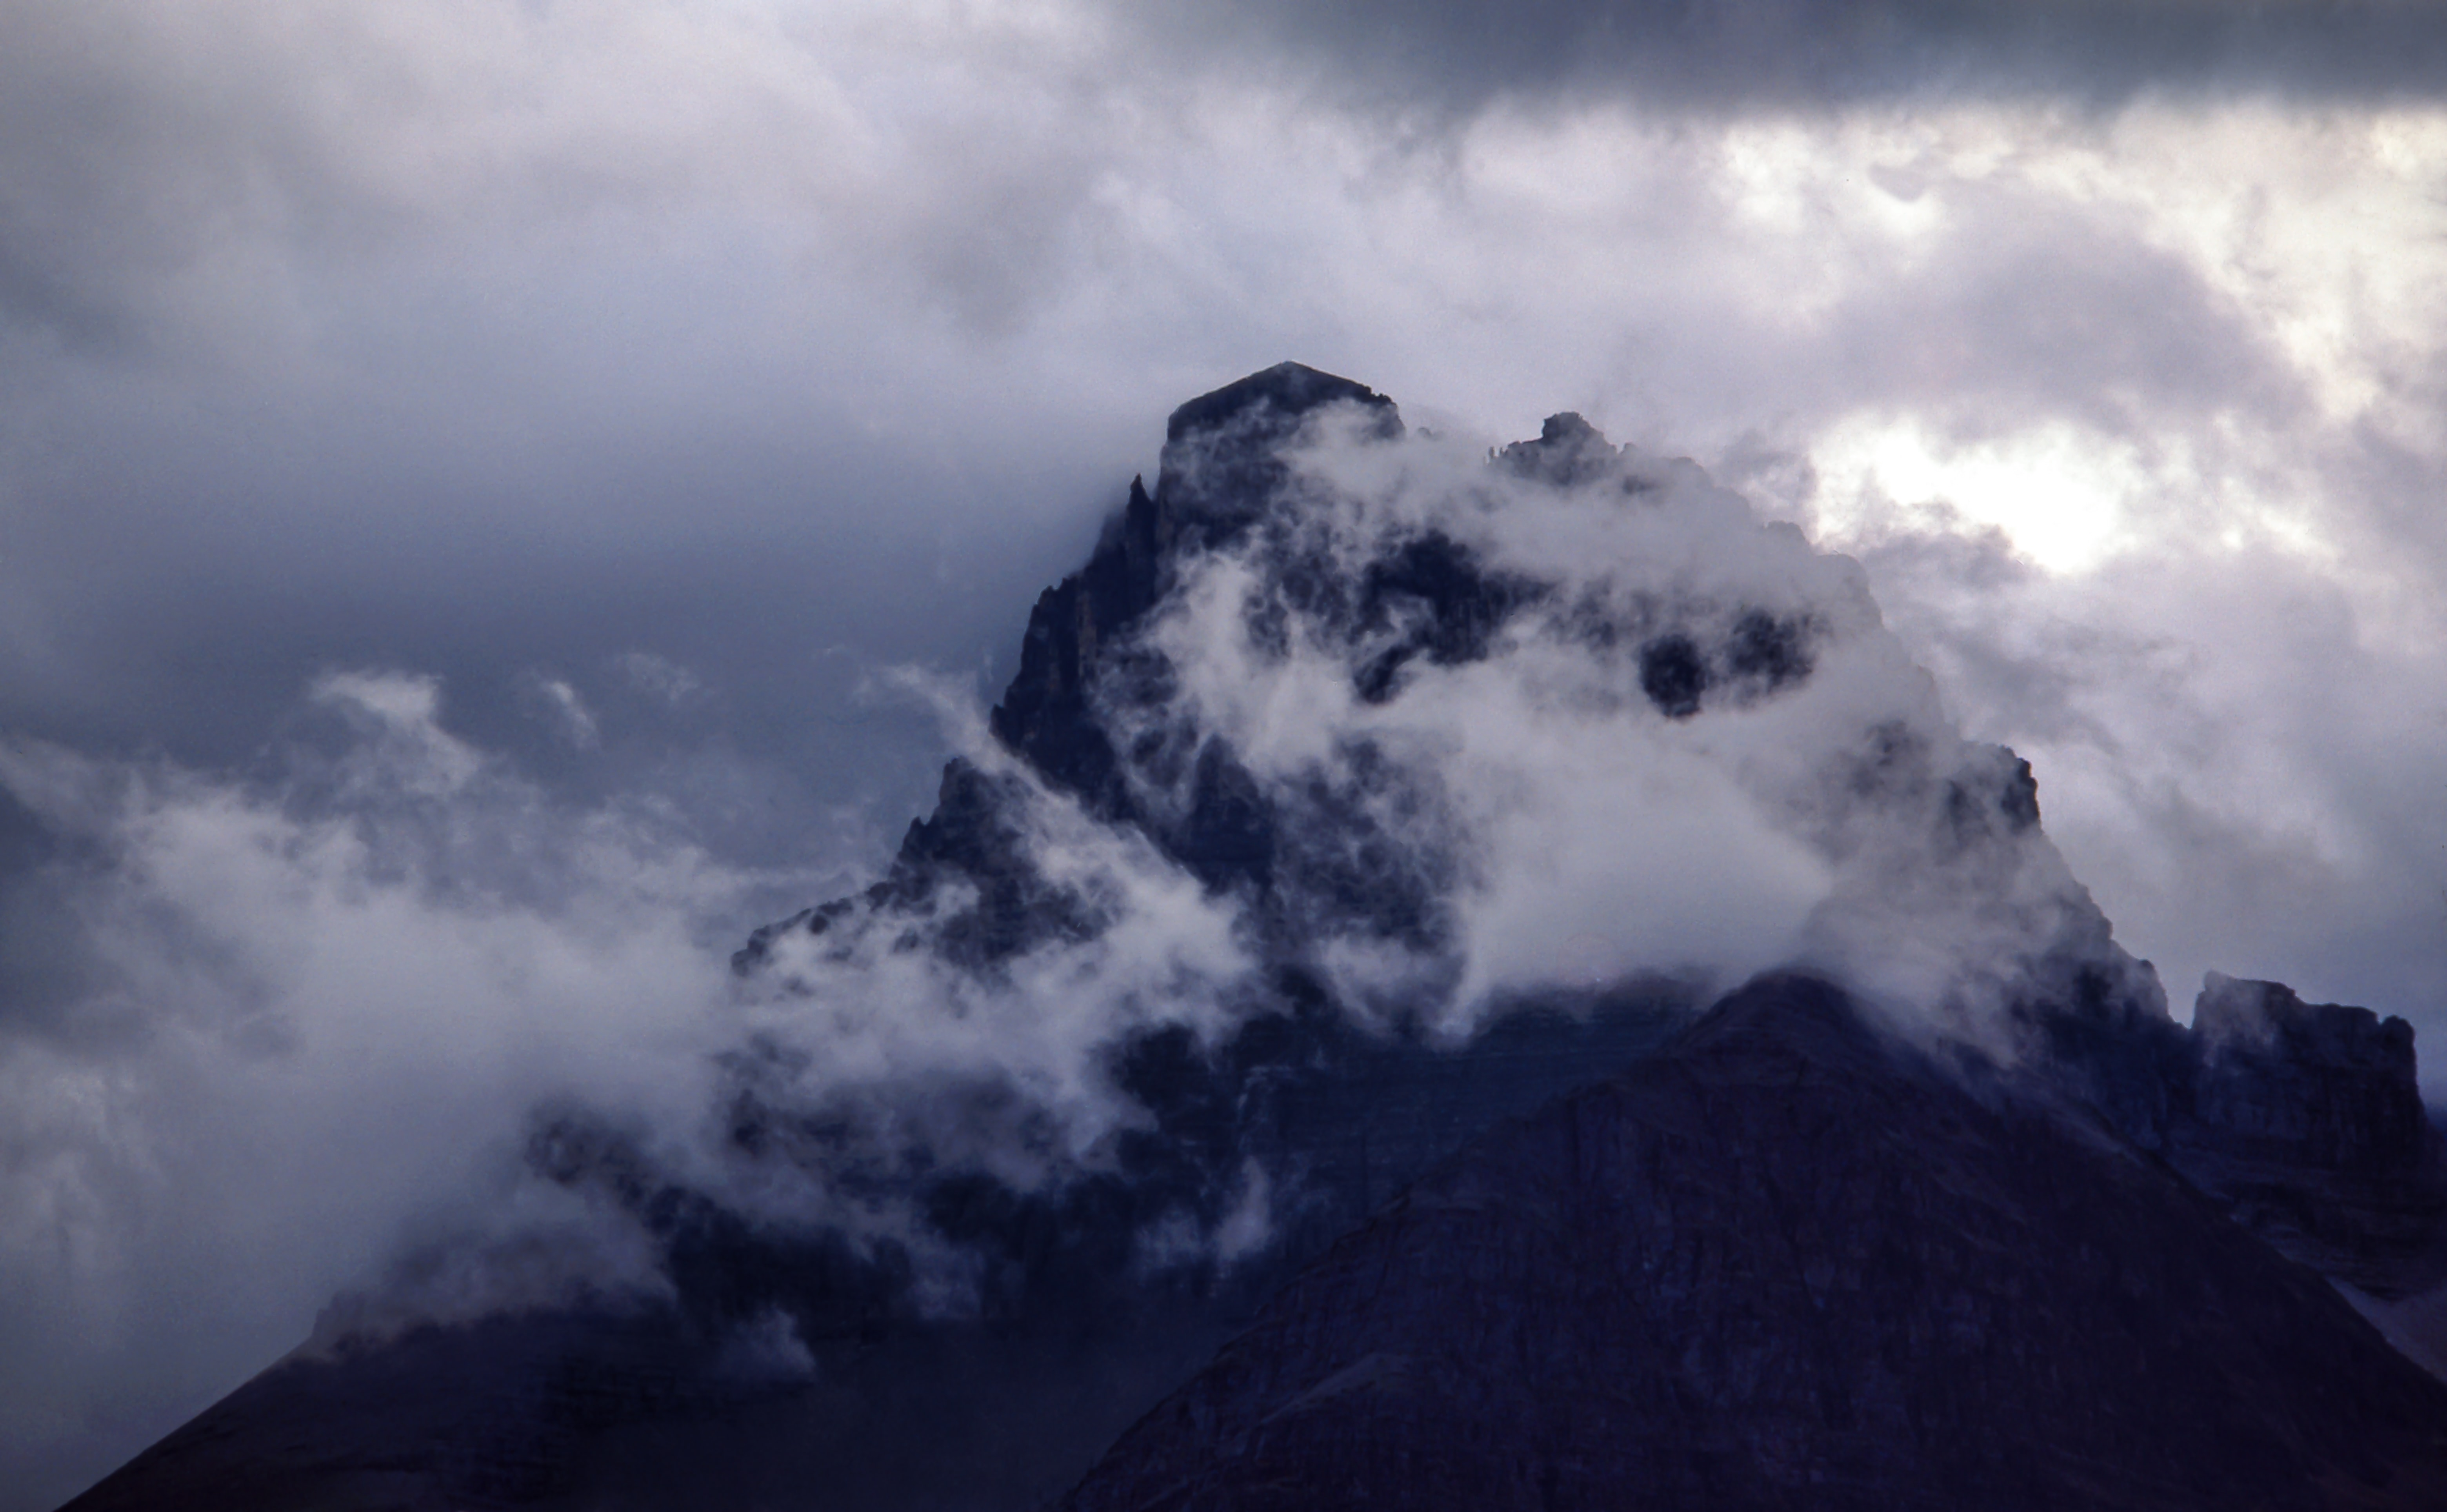 A jagged mountain peak shrouded in patchy clouds